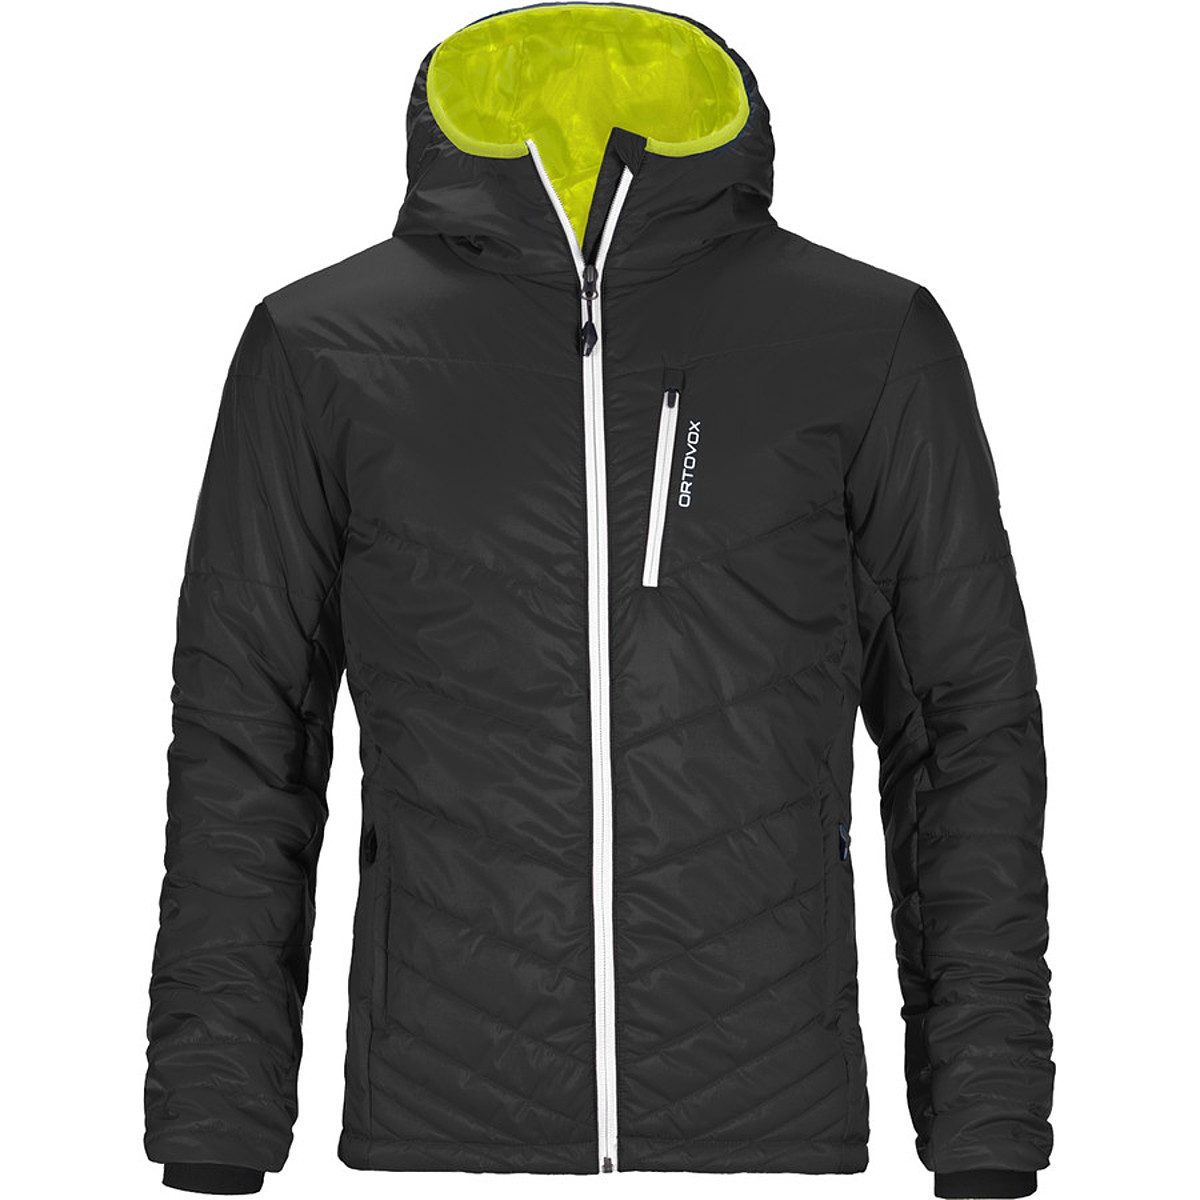 photo of a Ortovox outdoor clothing product